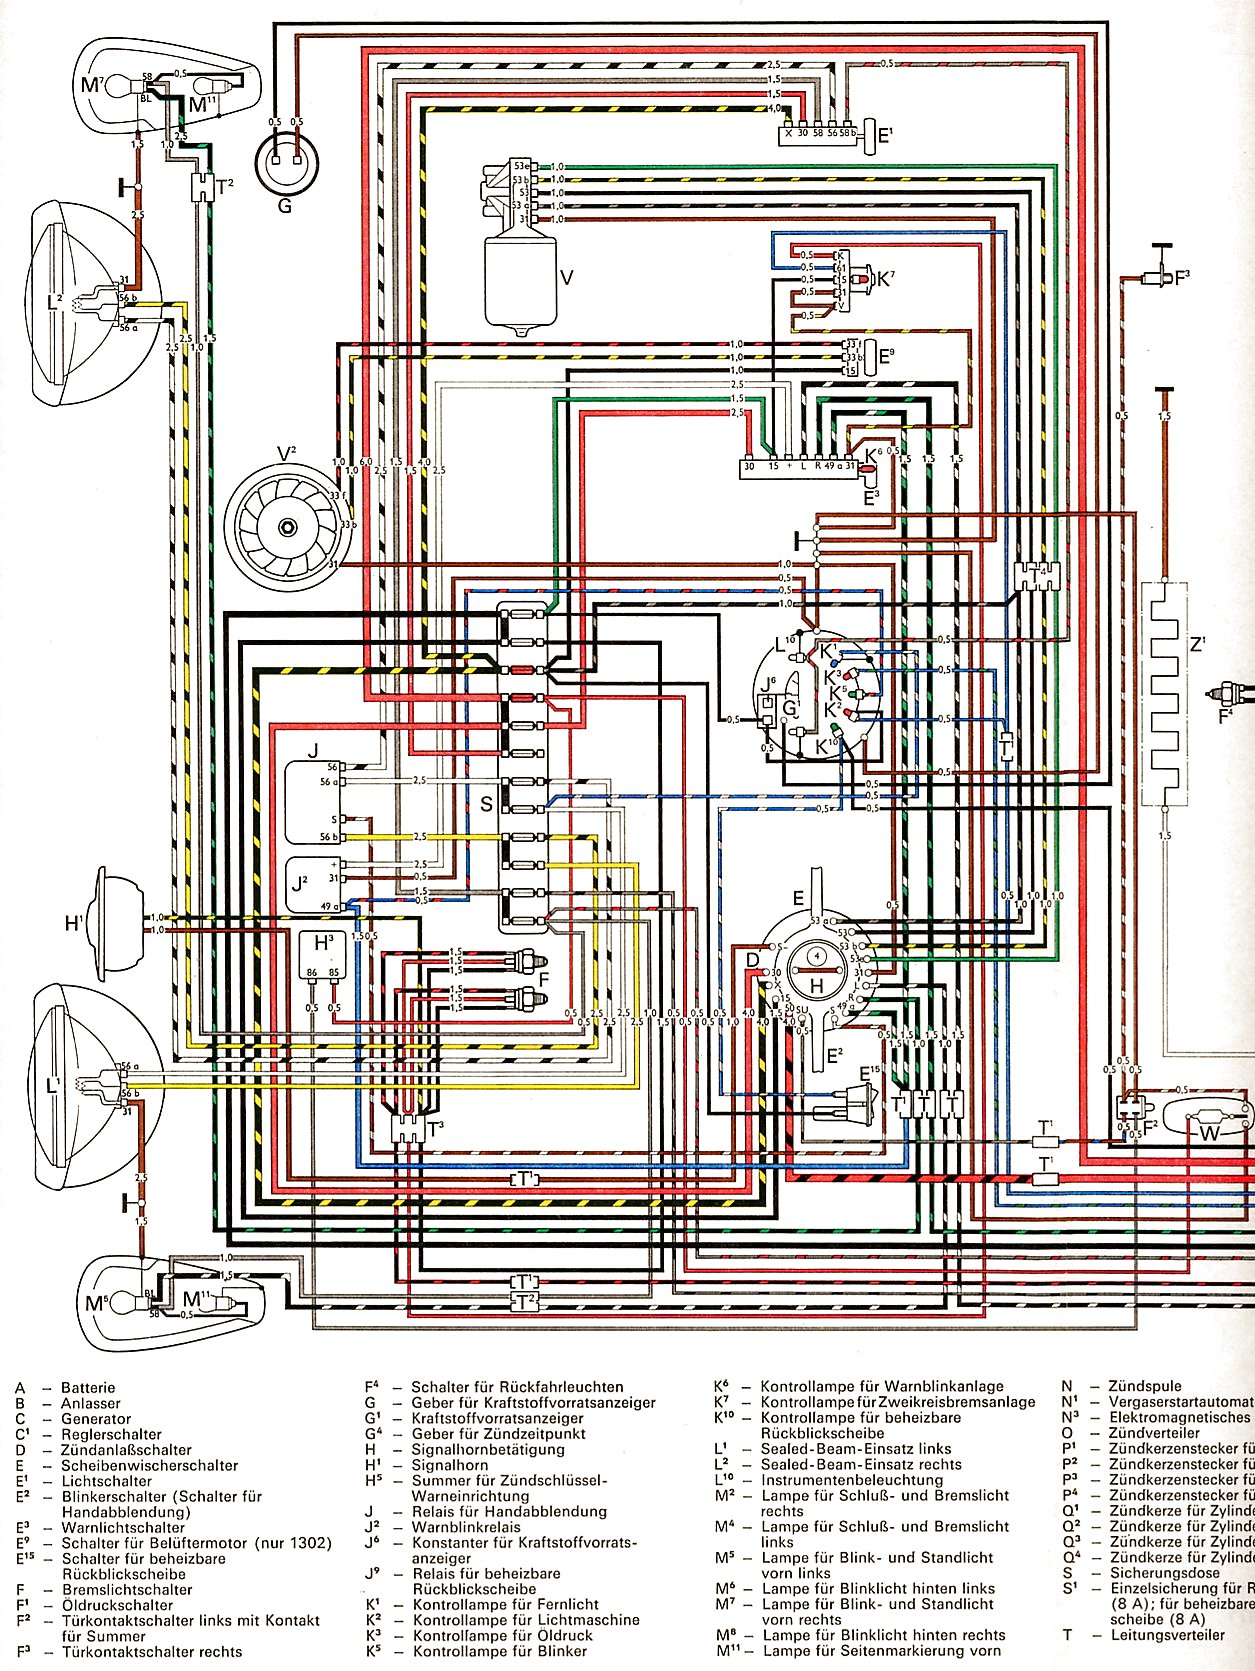 1300_and_1302_USA_from_August_1971 1 wiring diagram shoptalkforums com vw wiring diagram at gsmportal.co